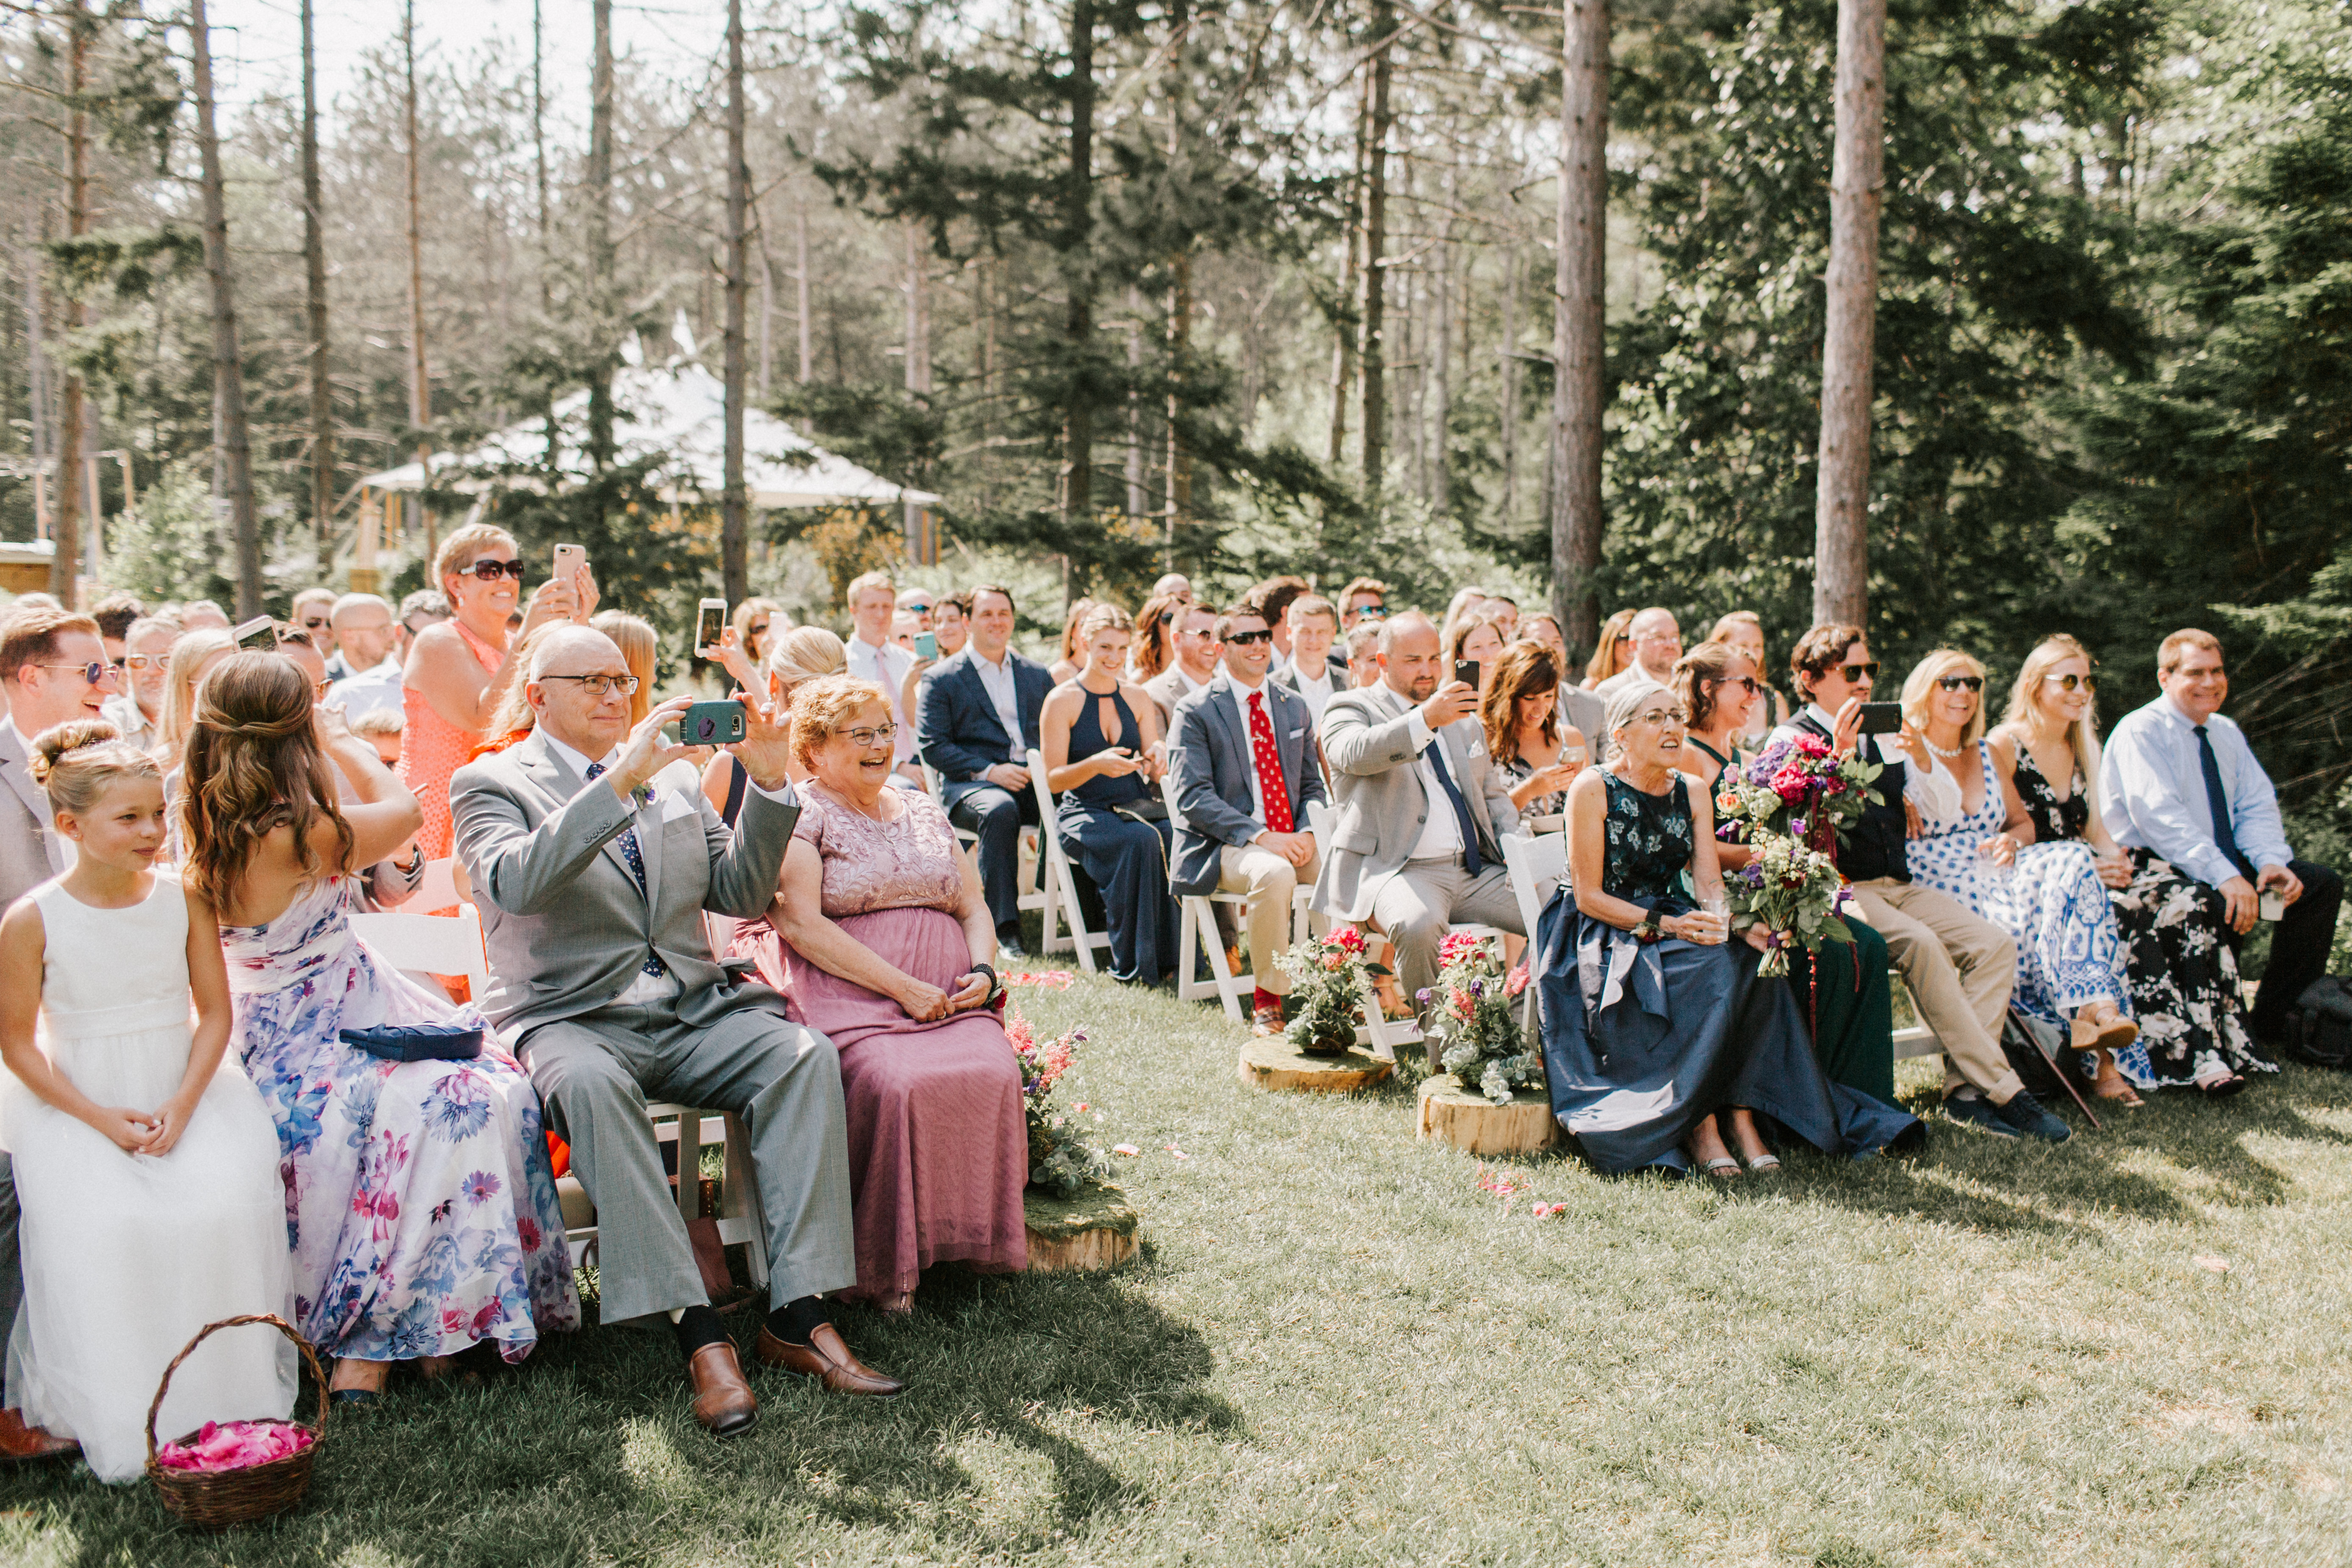 Ceremony at  Hidden Pond wedding in Kennebunkport, Maine